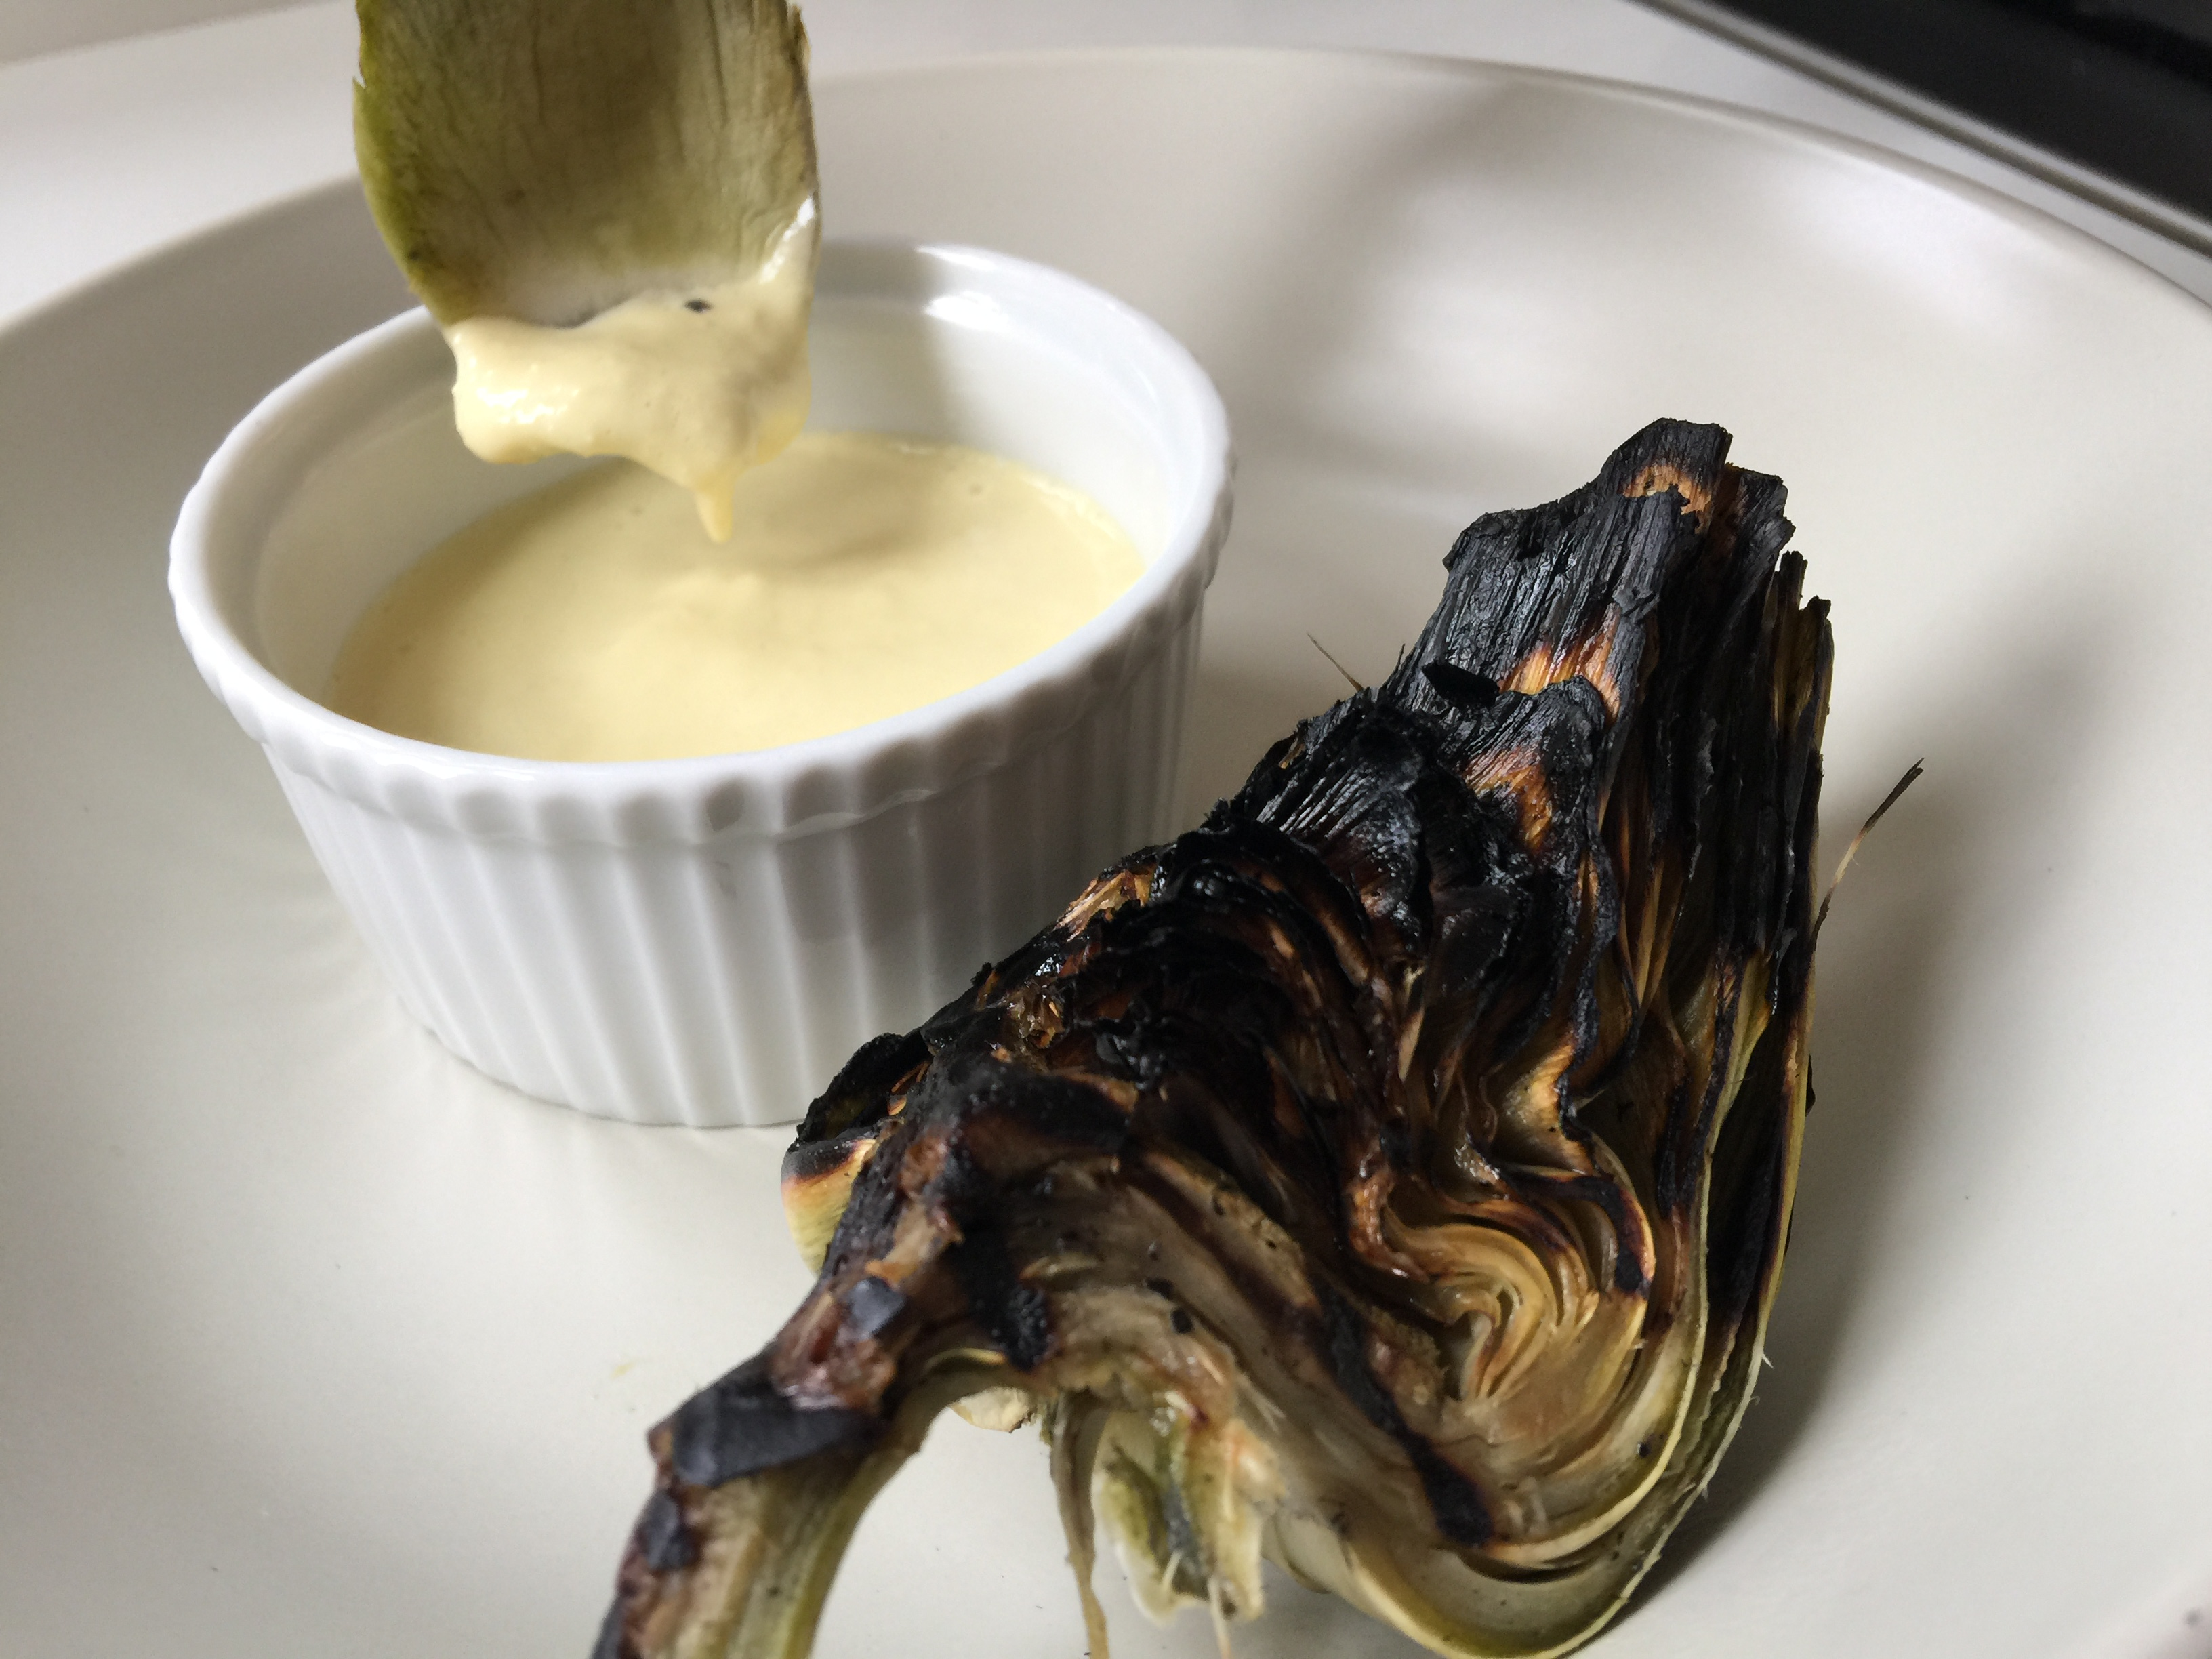 Grilled Artichokes with Green Garlic Dip - CookingCoOp.com